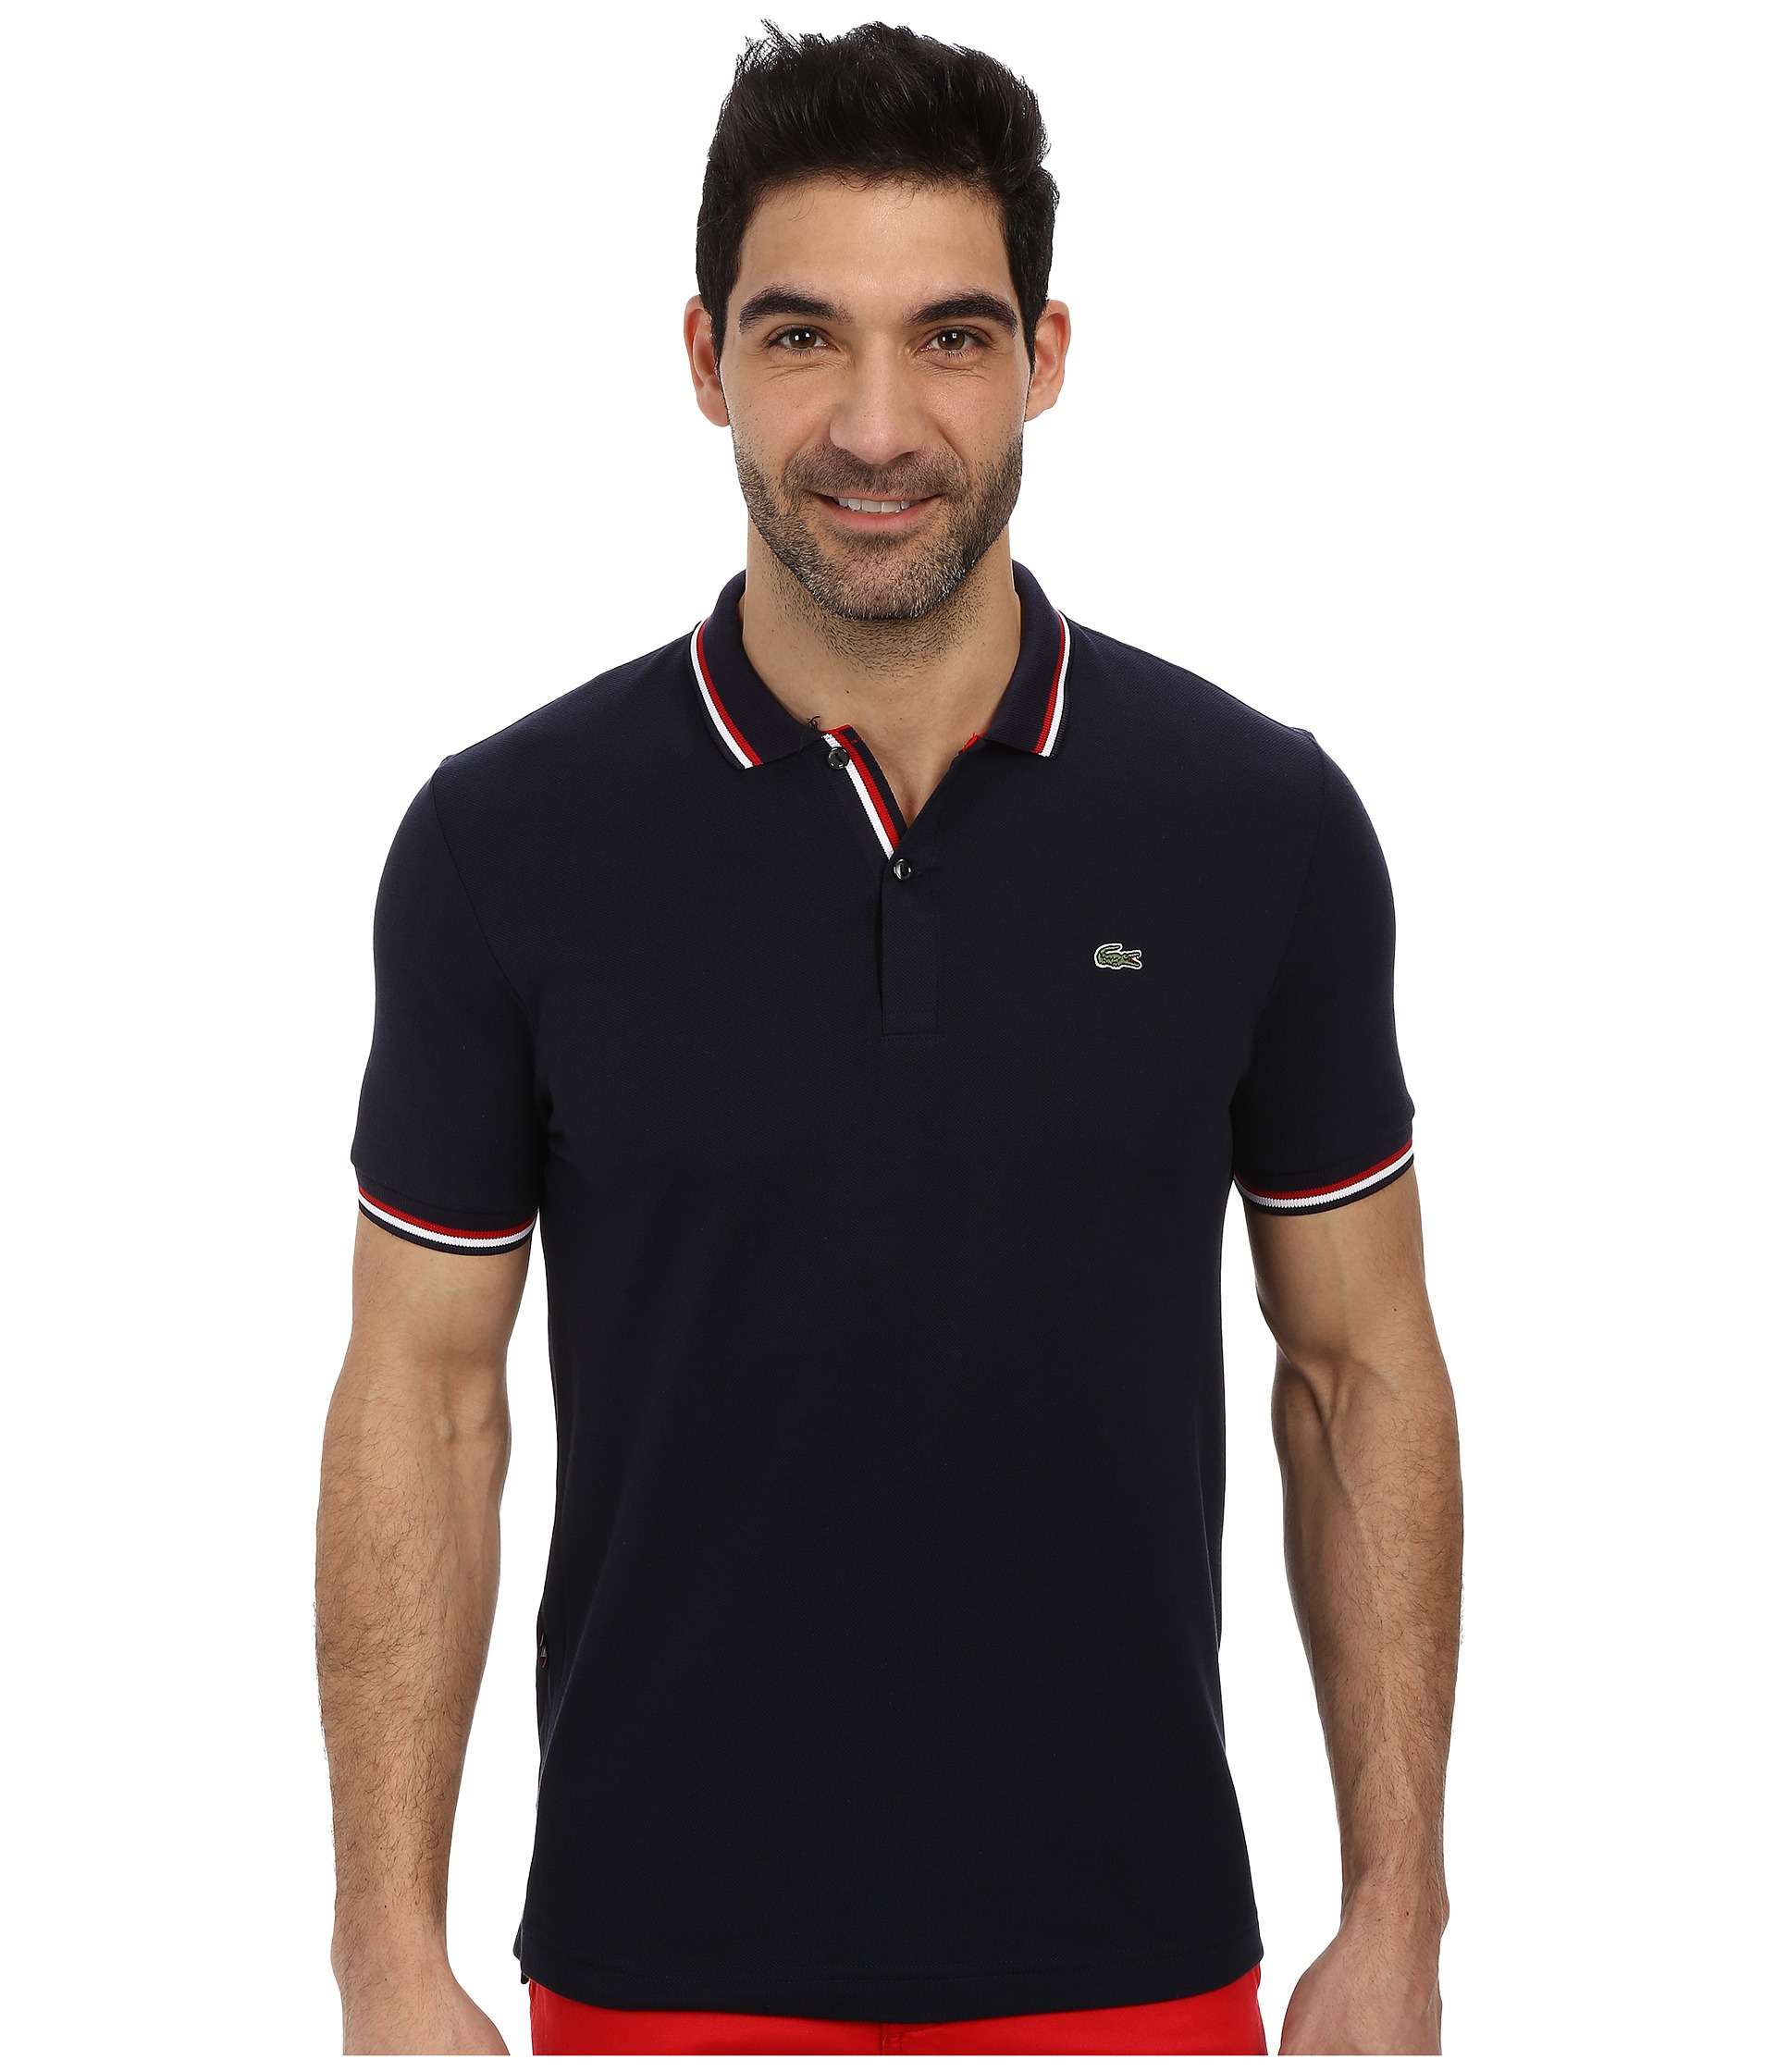 Lacoste live short sleeve semi fancy pique shirt navy blue for Tailored fit shirts meaning